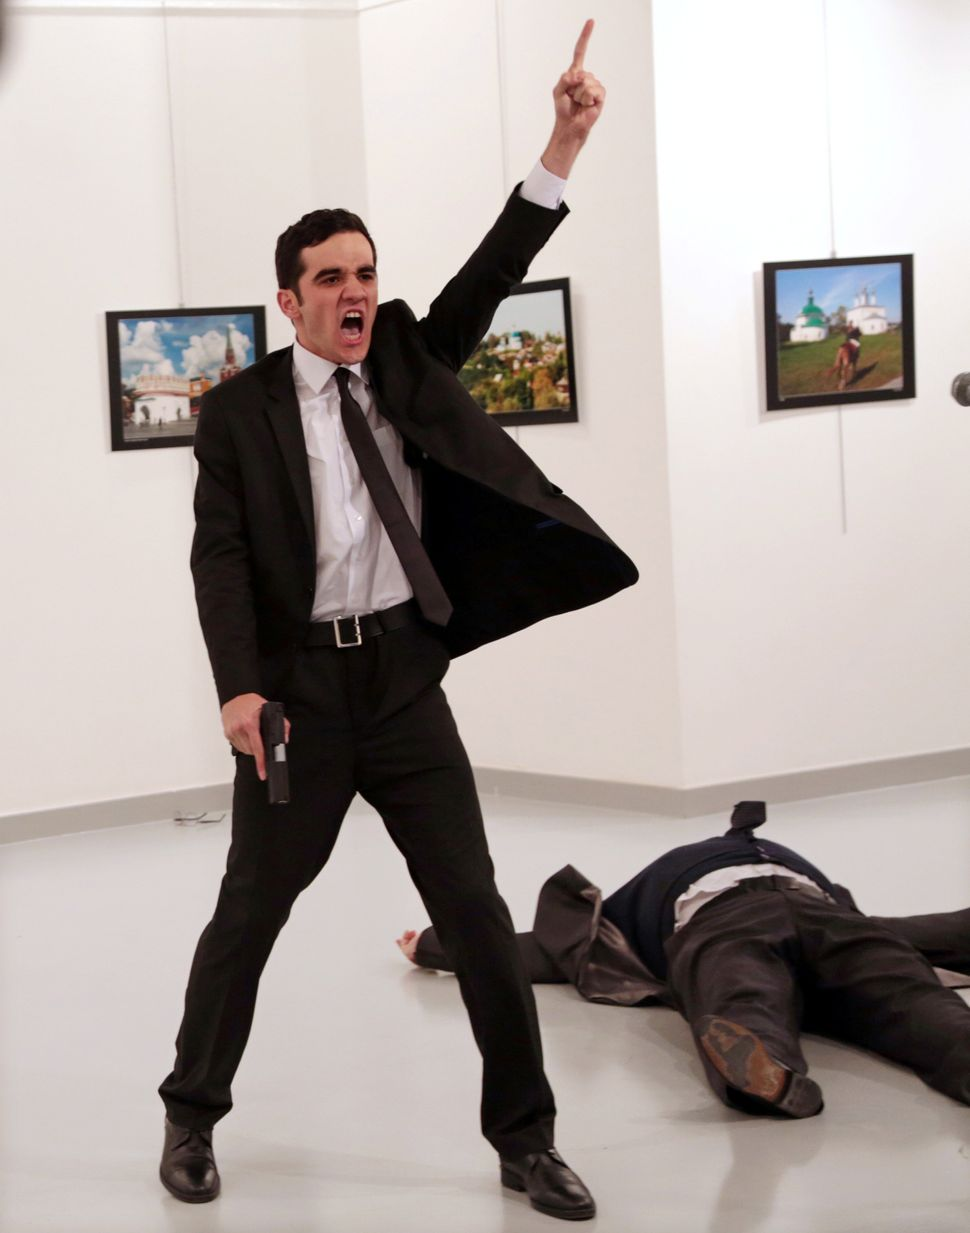 Mevlut Mert Altintas shouts after shooting Andrei Karlov, right, the Russian ambassador to Turkey, at an art gallery in Ankar